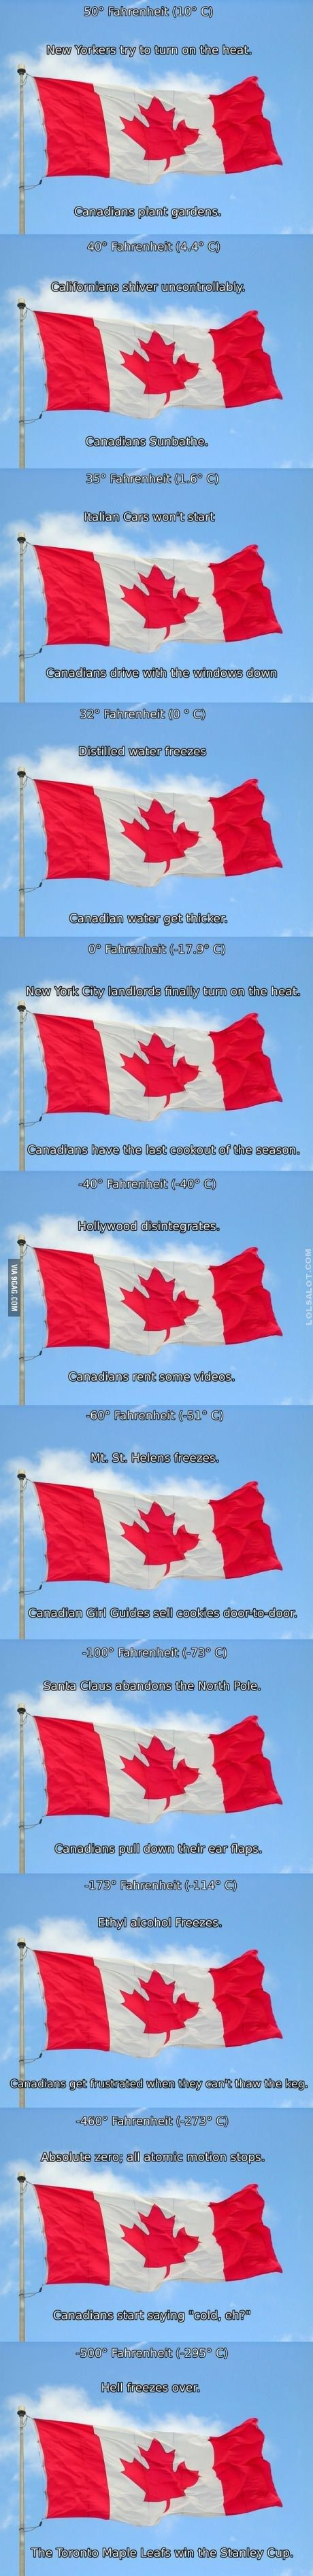 Official Canadian Temperature Chart  http://lolsalot.com/funny-pics/official-canadian-temperature-chart/  free funny pic downloads, funny, funny cat pics, funny celebrity pics, funny comic pics, funny fail, funny google, funny meanwhile in pictures, funny memes, funny minions, funny photos, funny photos to share on facebook, funny pic of the day, funny pics to share, Funny pictures, funny politics pics, funny quotes, funny space pics, funny unique pics, funny usa pics, hil